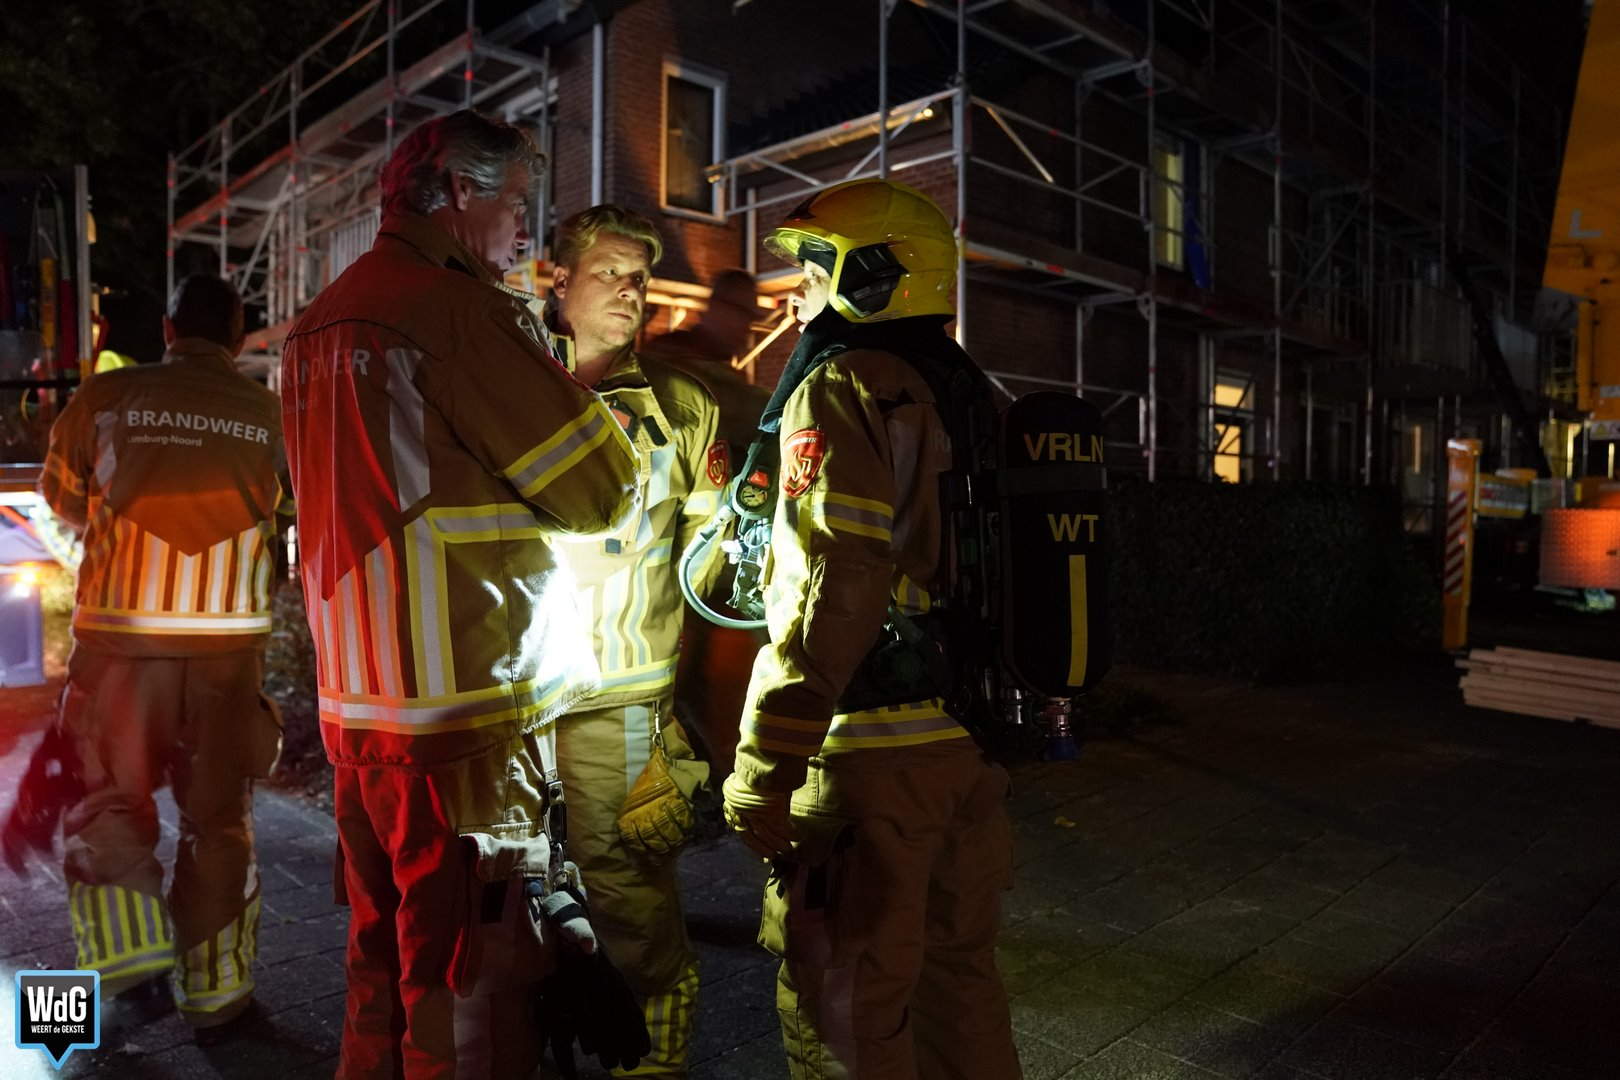 Controle in woning na onwelwording